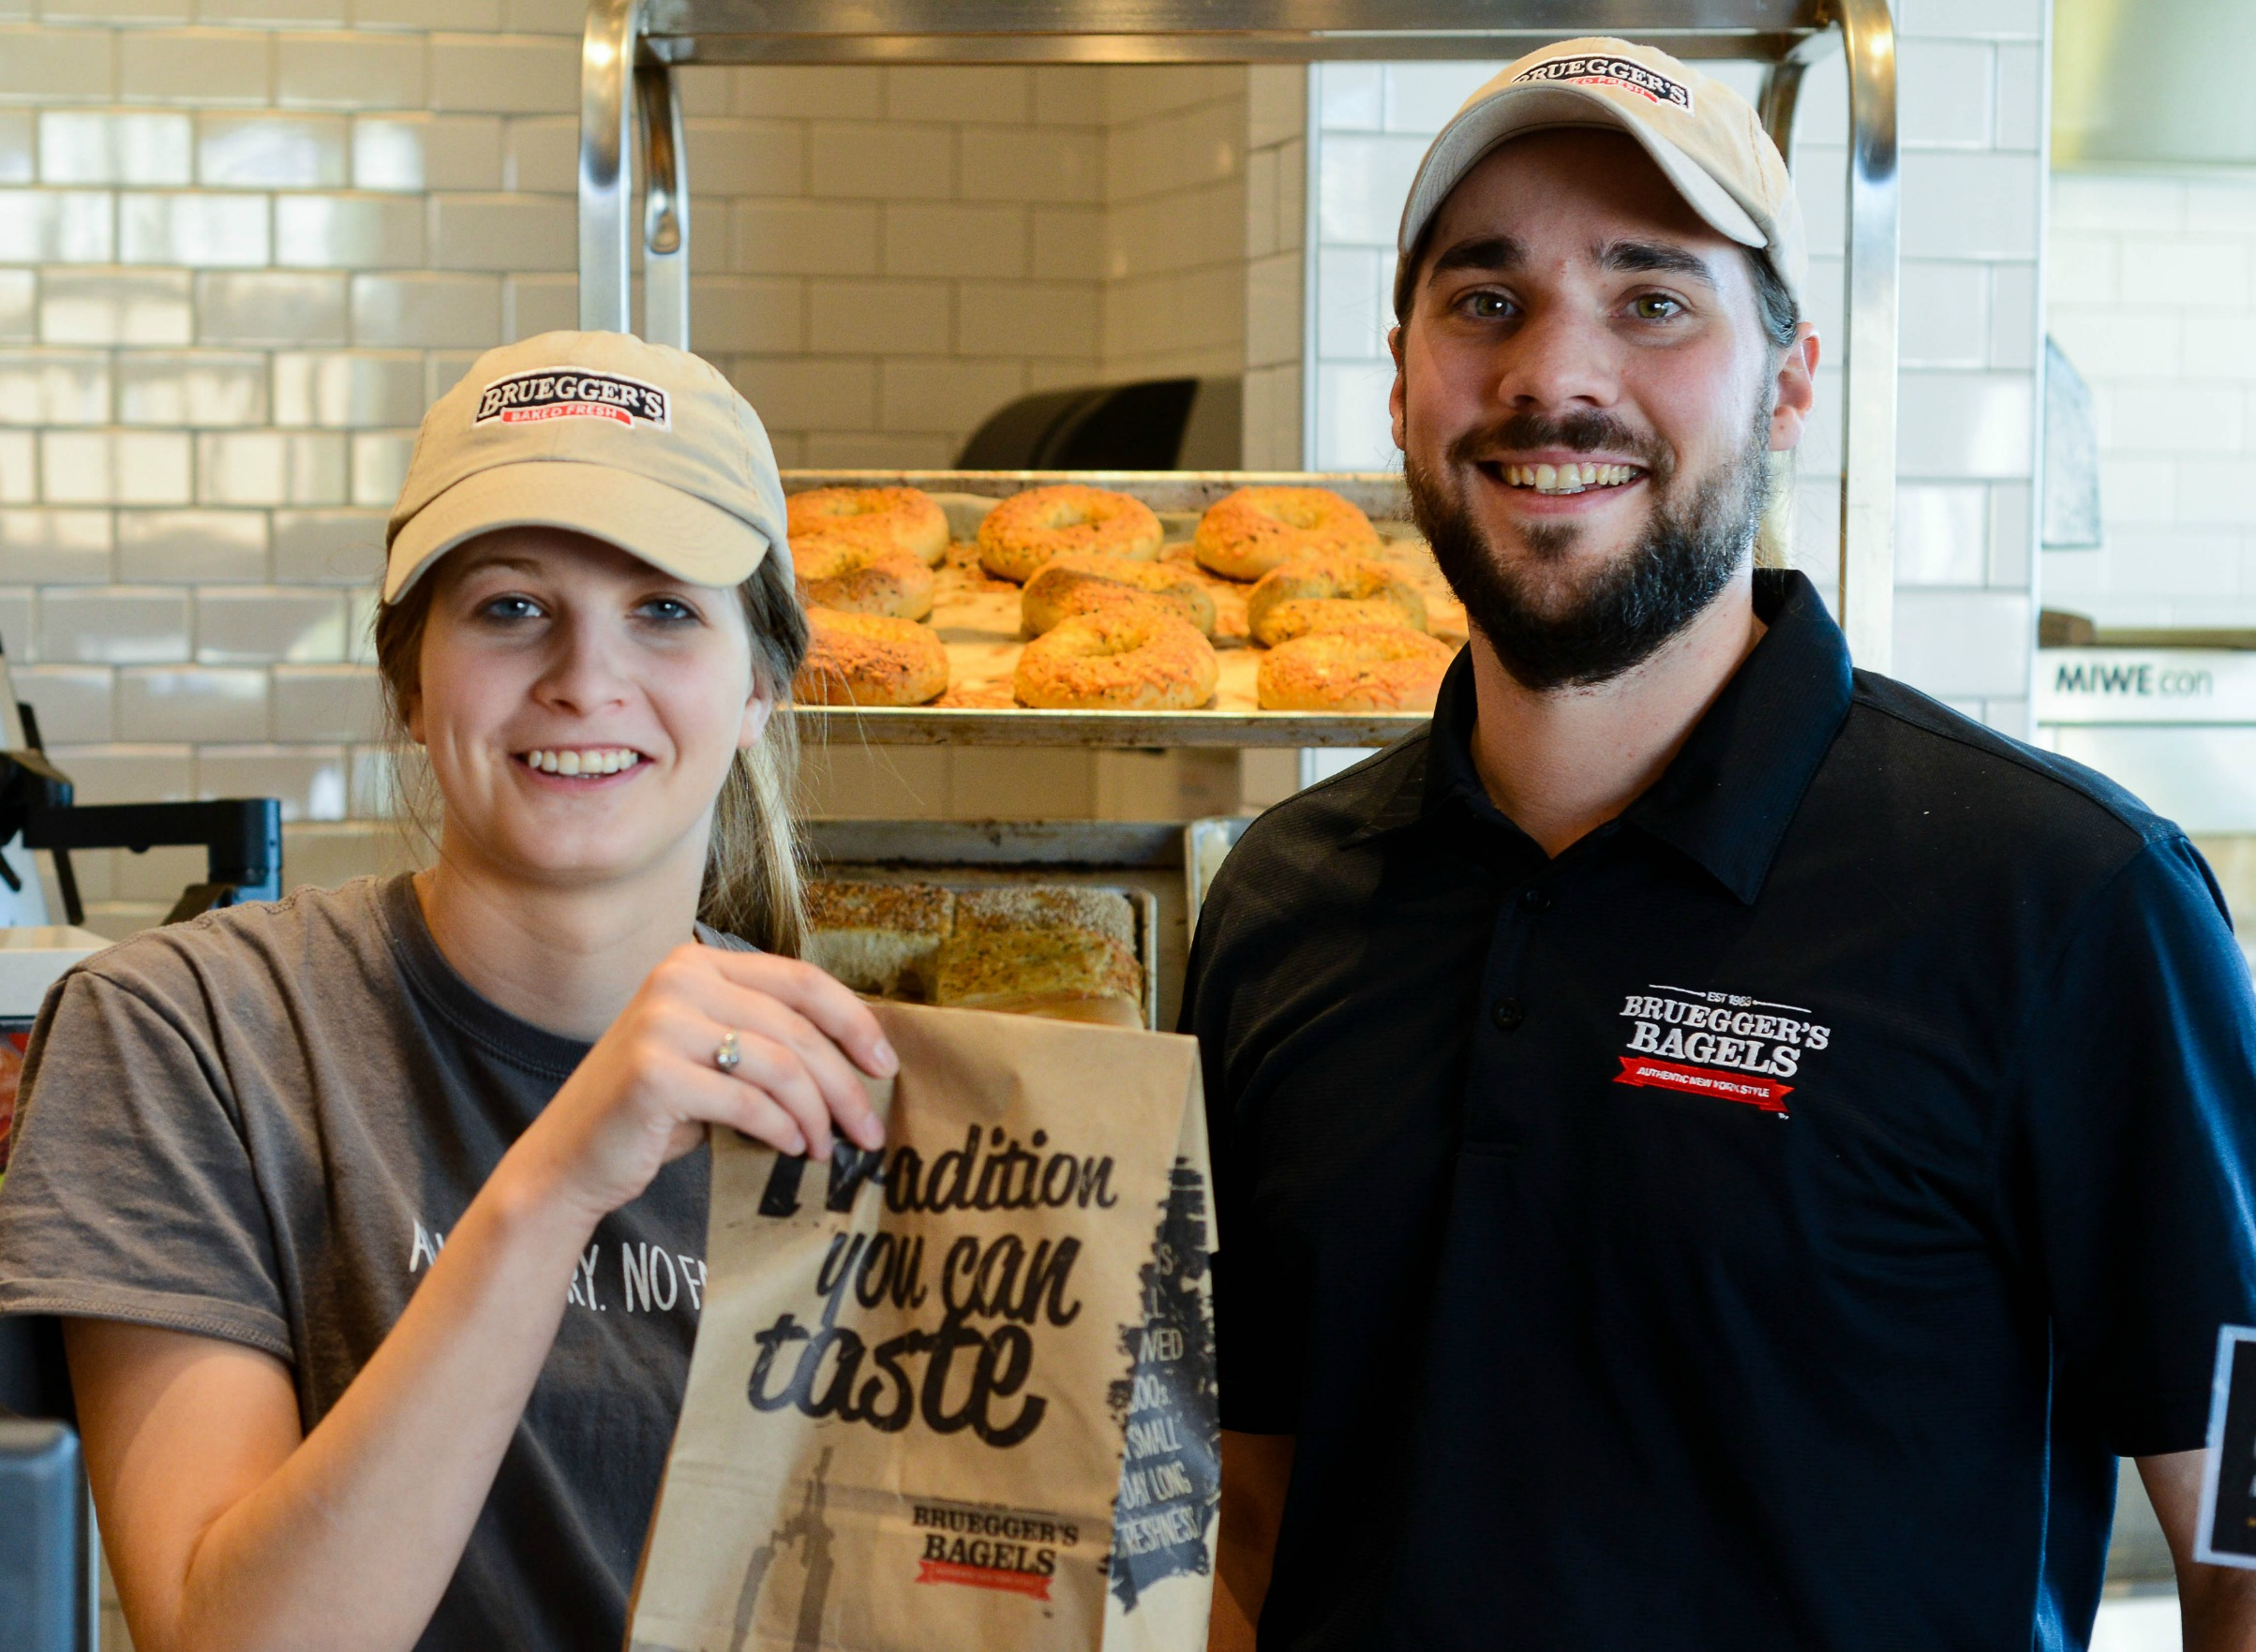 Tradition you can taste - careers at Bruegger's